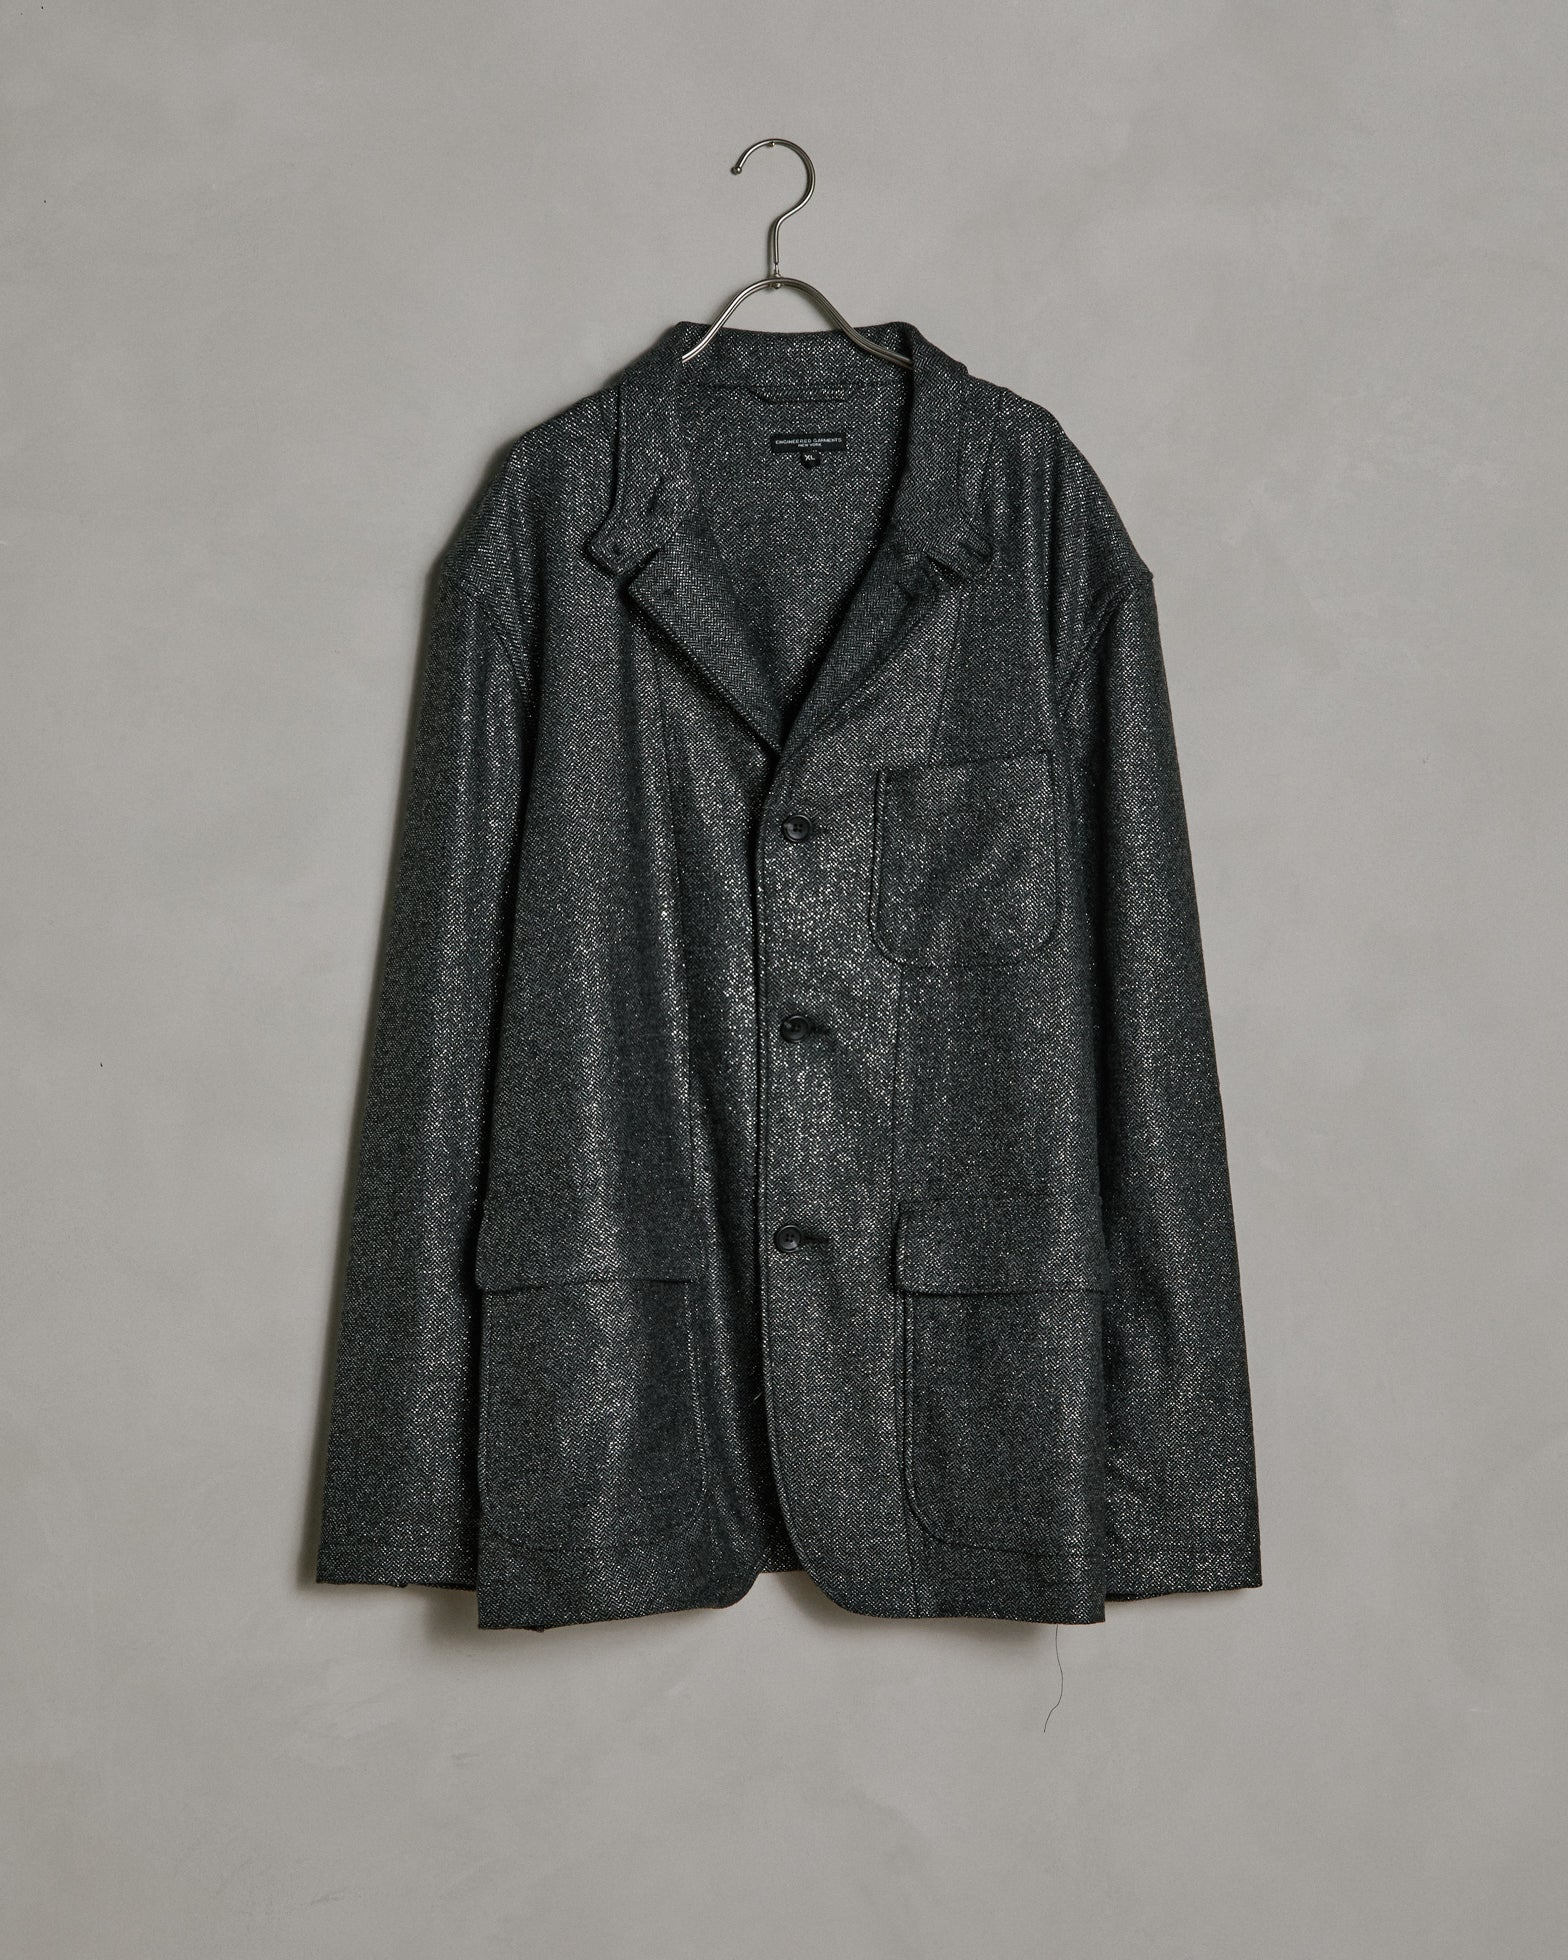 Loiter Jacket in Grey